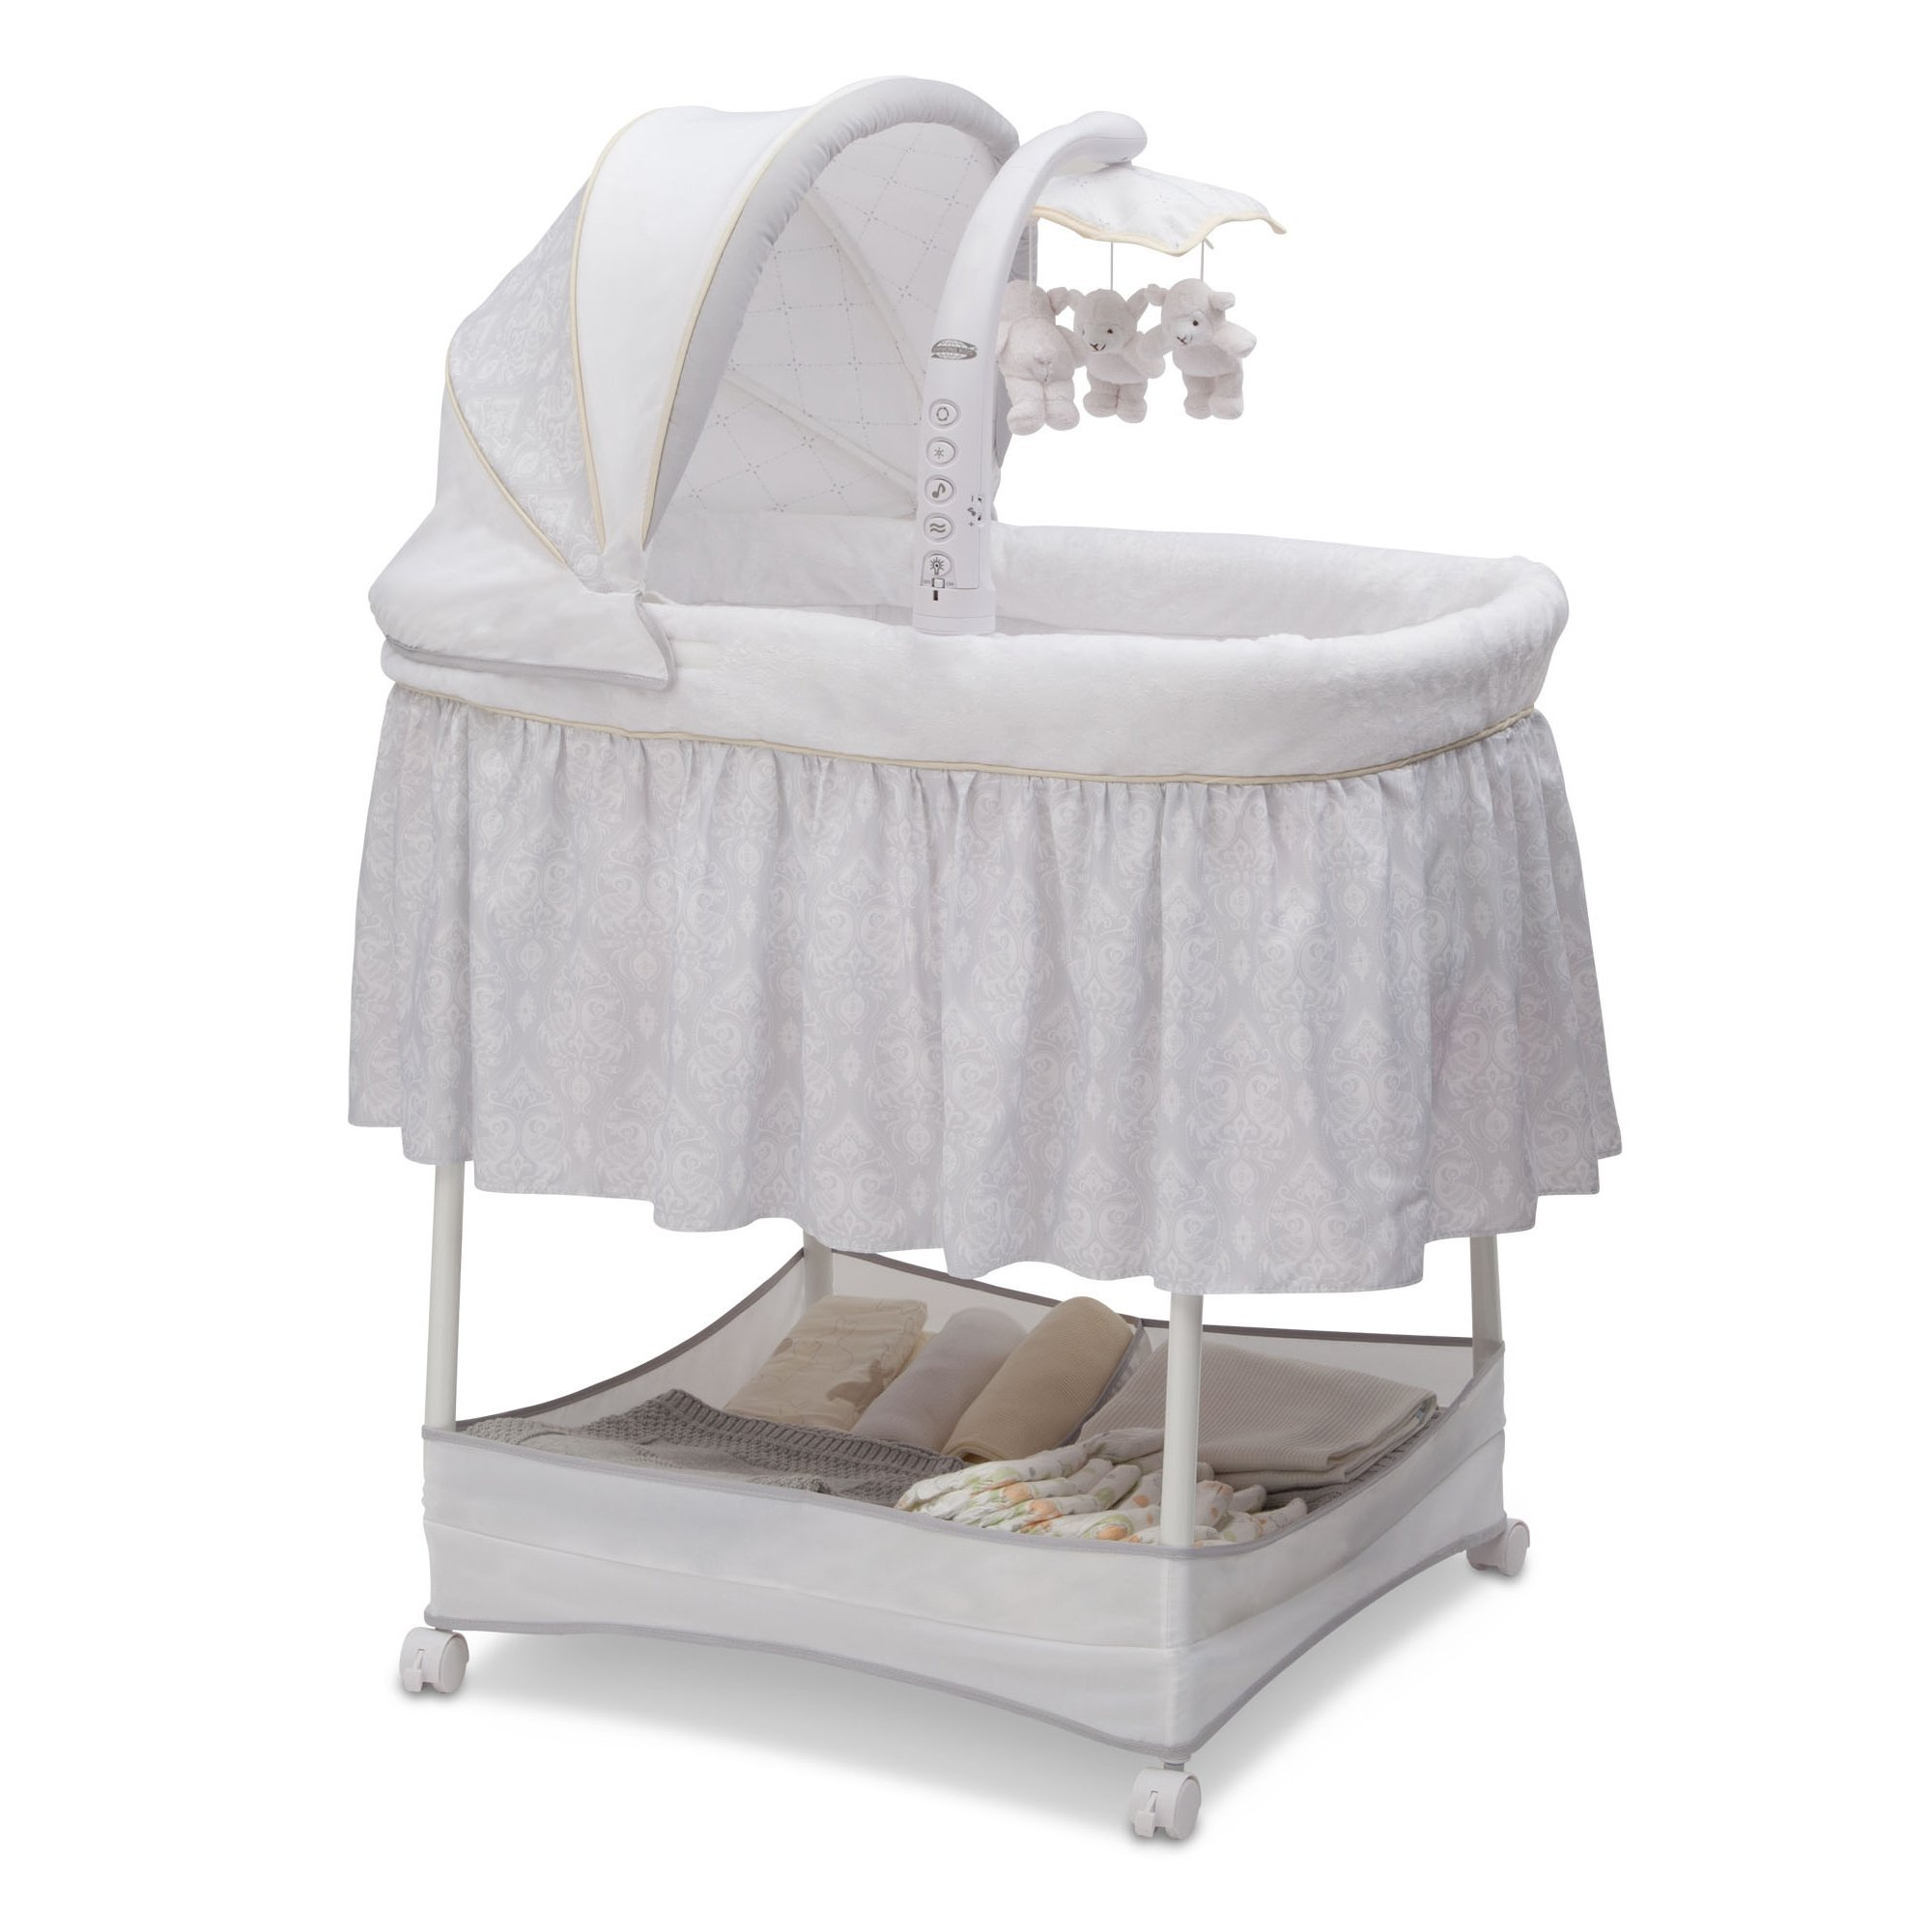 Simmons Kids Gliding Bassinet, Peacock by Simmons Kids